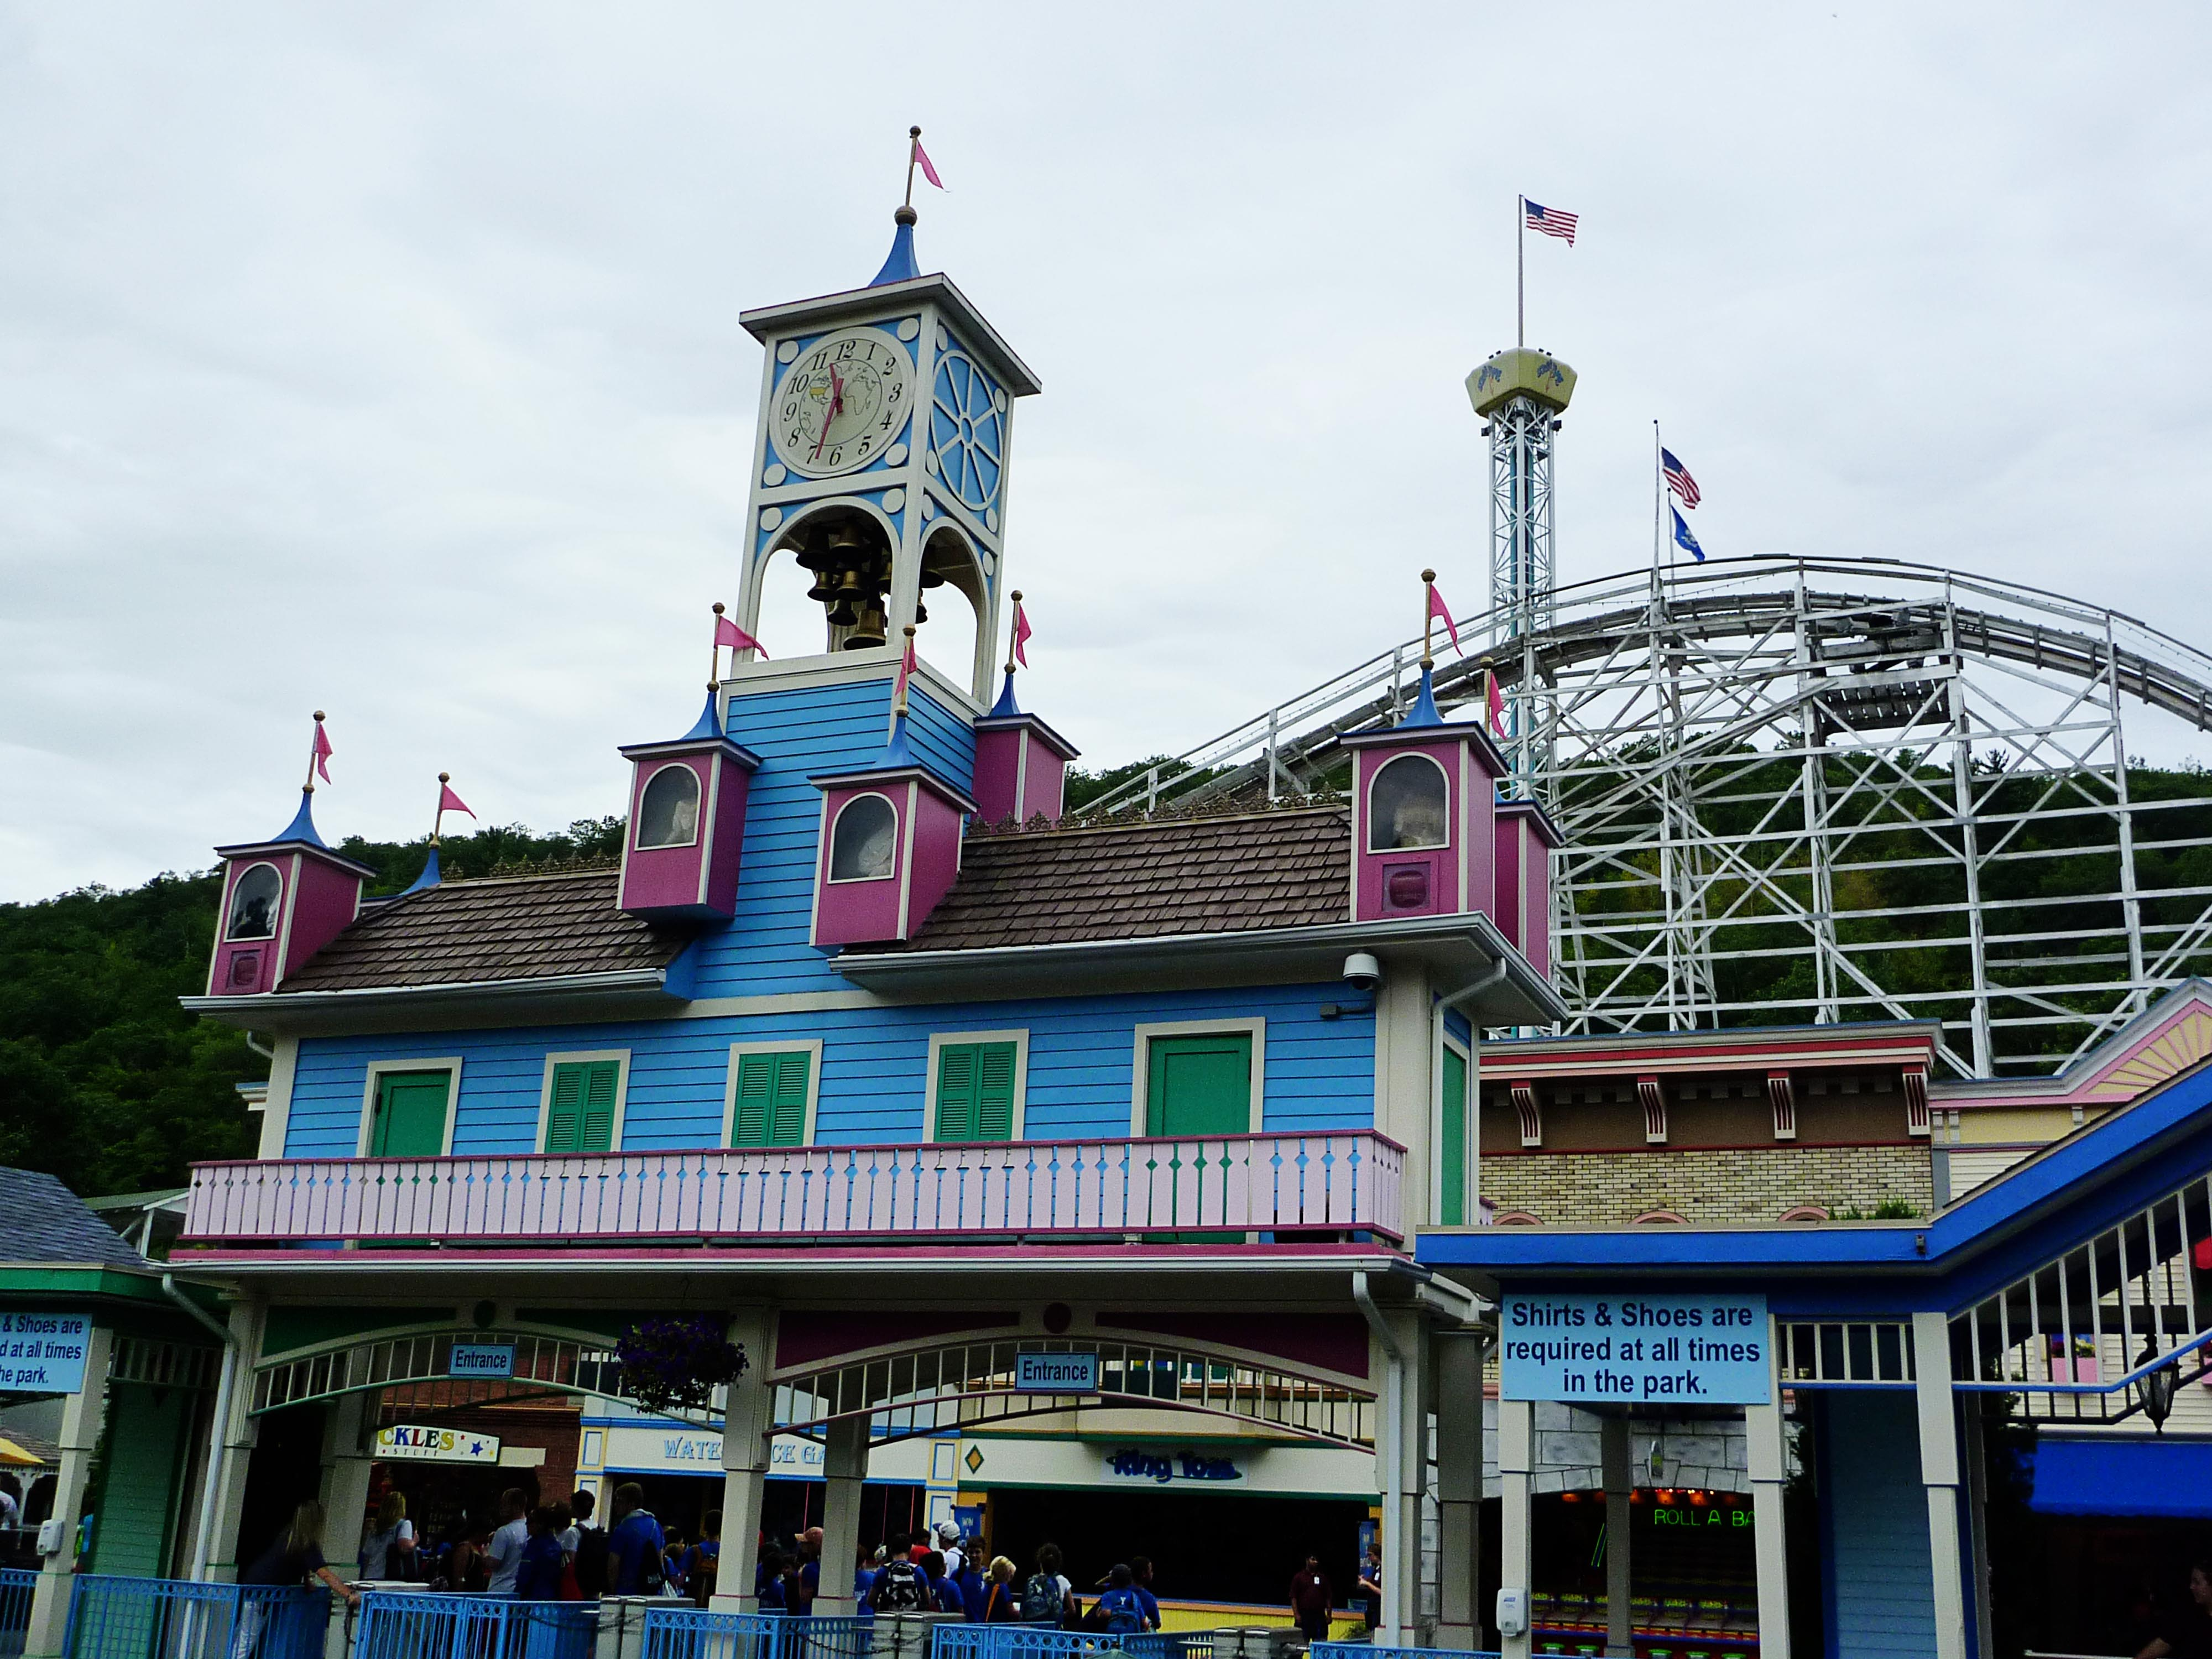 Lake Compounce is an amusement park located in Bristol and Southington, healthpot.ml in , it is the oldest, continuously-operating amusement park in the United States. It spans acres ( ha), which includes a beach and a water park called Crocodile Cove included in the price of admission. The park was acquired from Kennywood Entertainment Company by Palace .